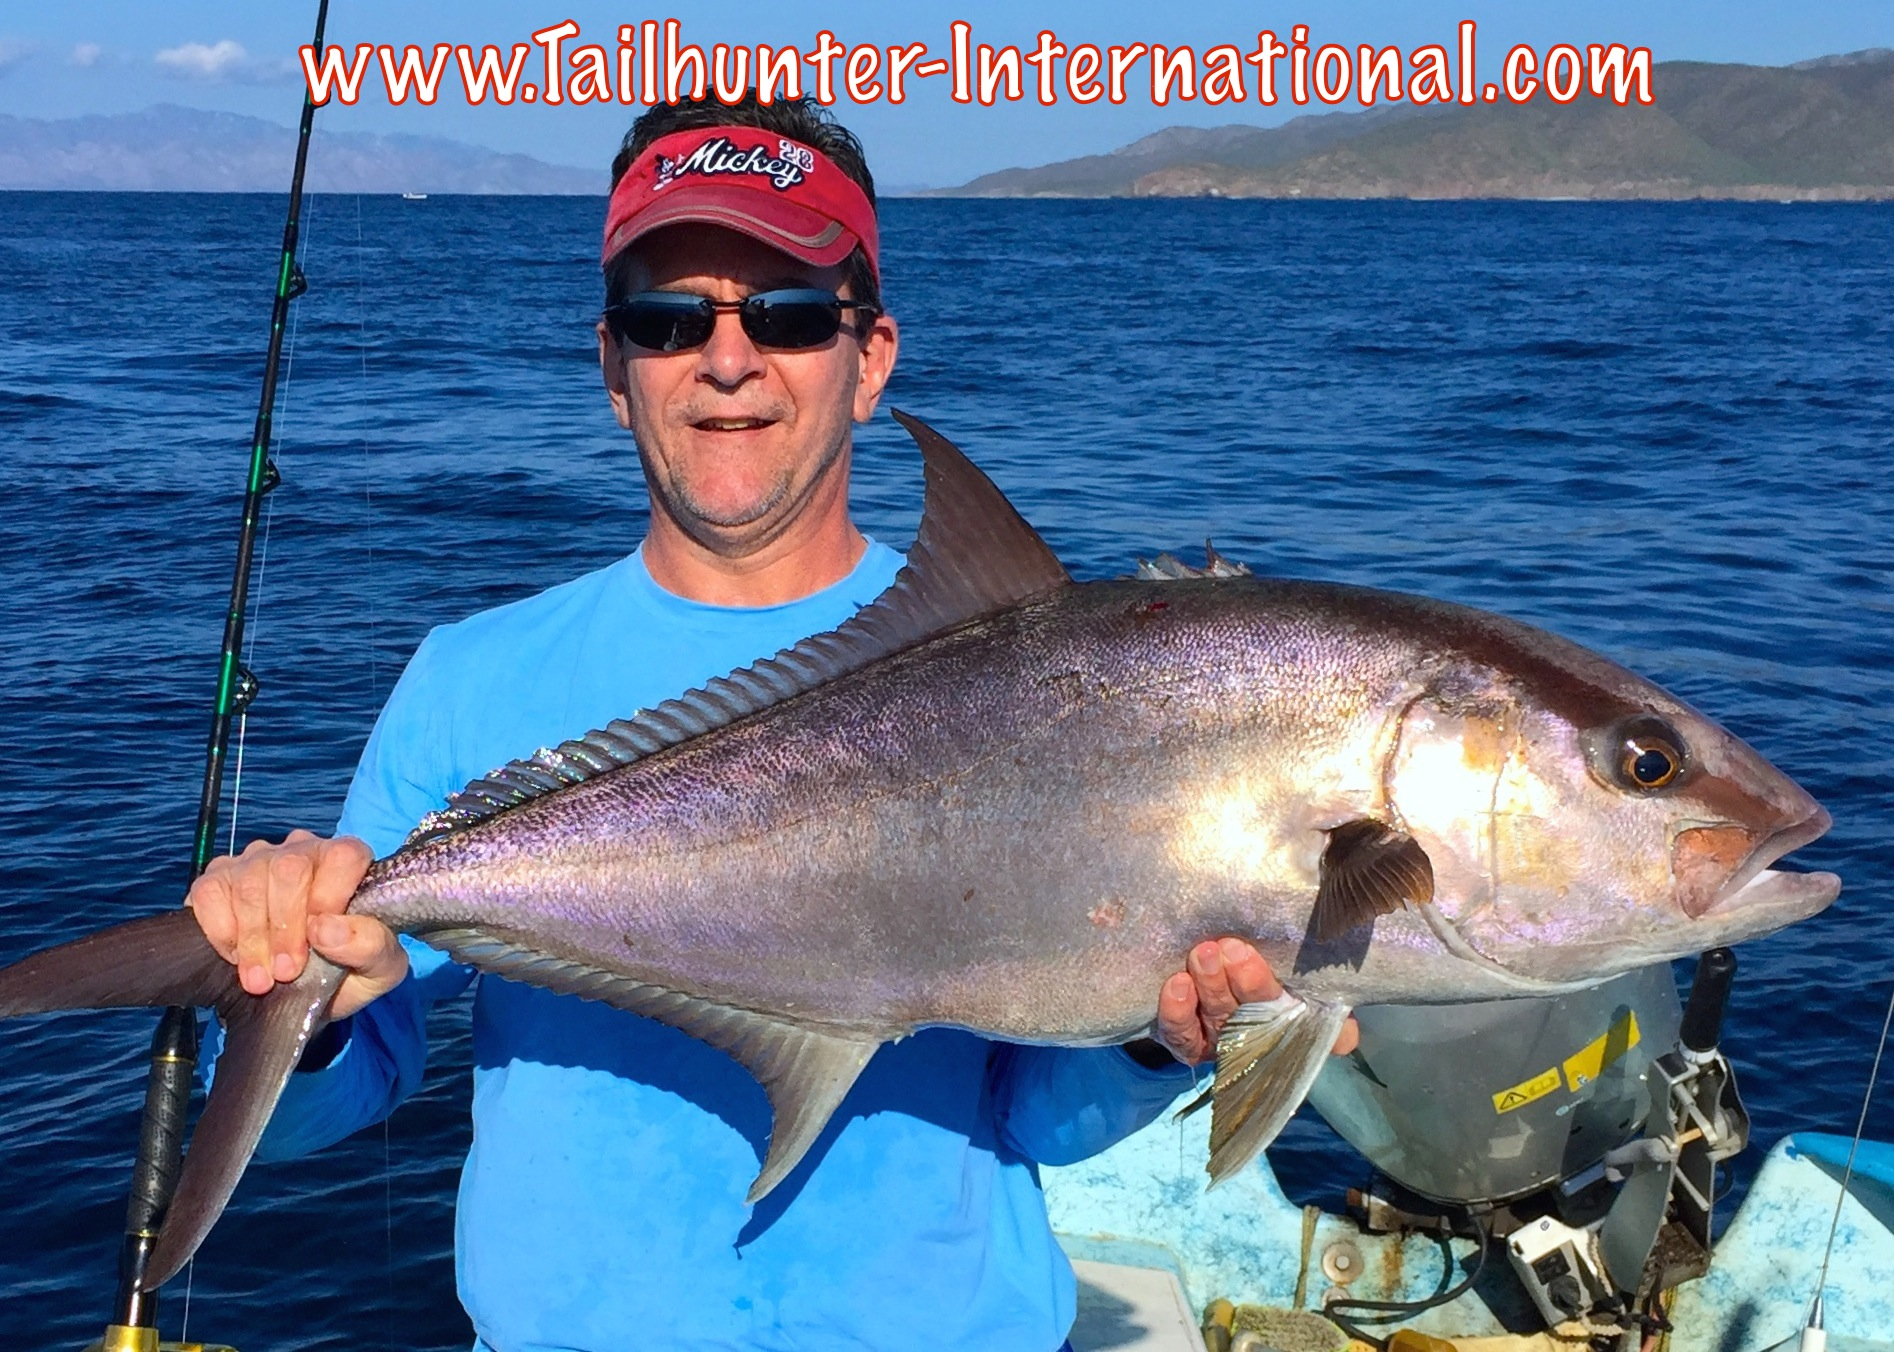 La paz las arenas muertos bay fishing report from for Bakersfield fishing report